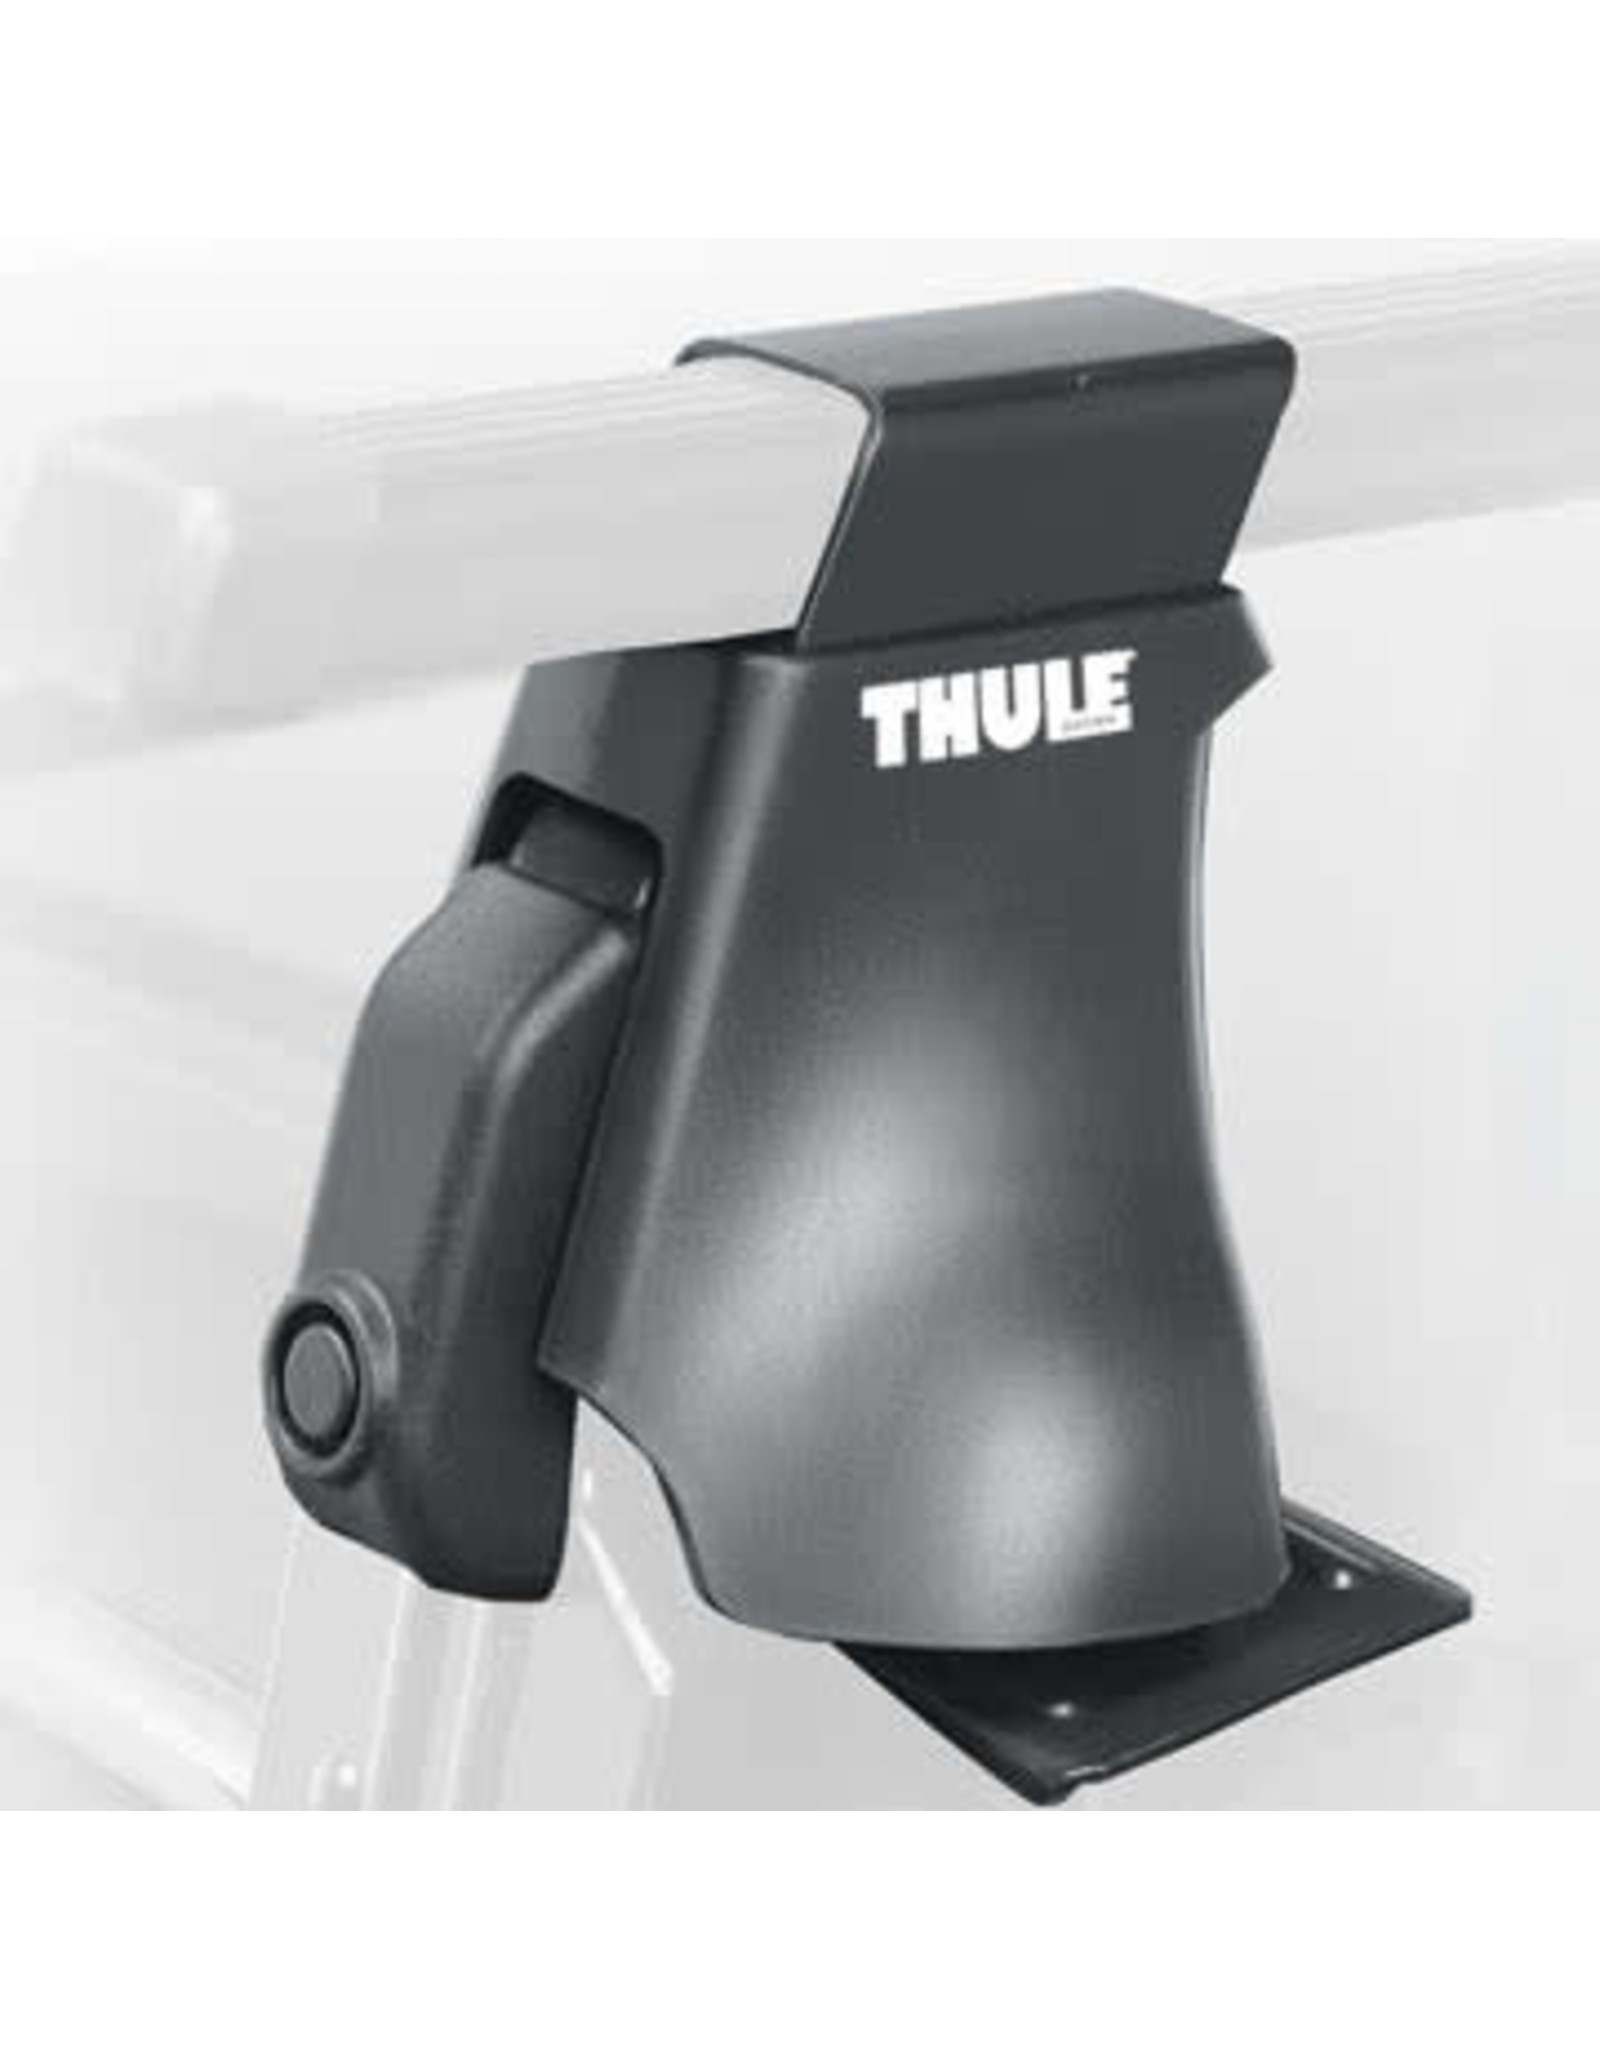 Thule Thule 400XT Aero Foot Pack Load Bar Tower Set: Fits Rectangular Bar; 4-Pack